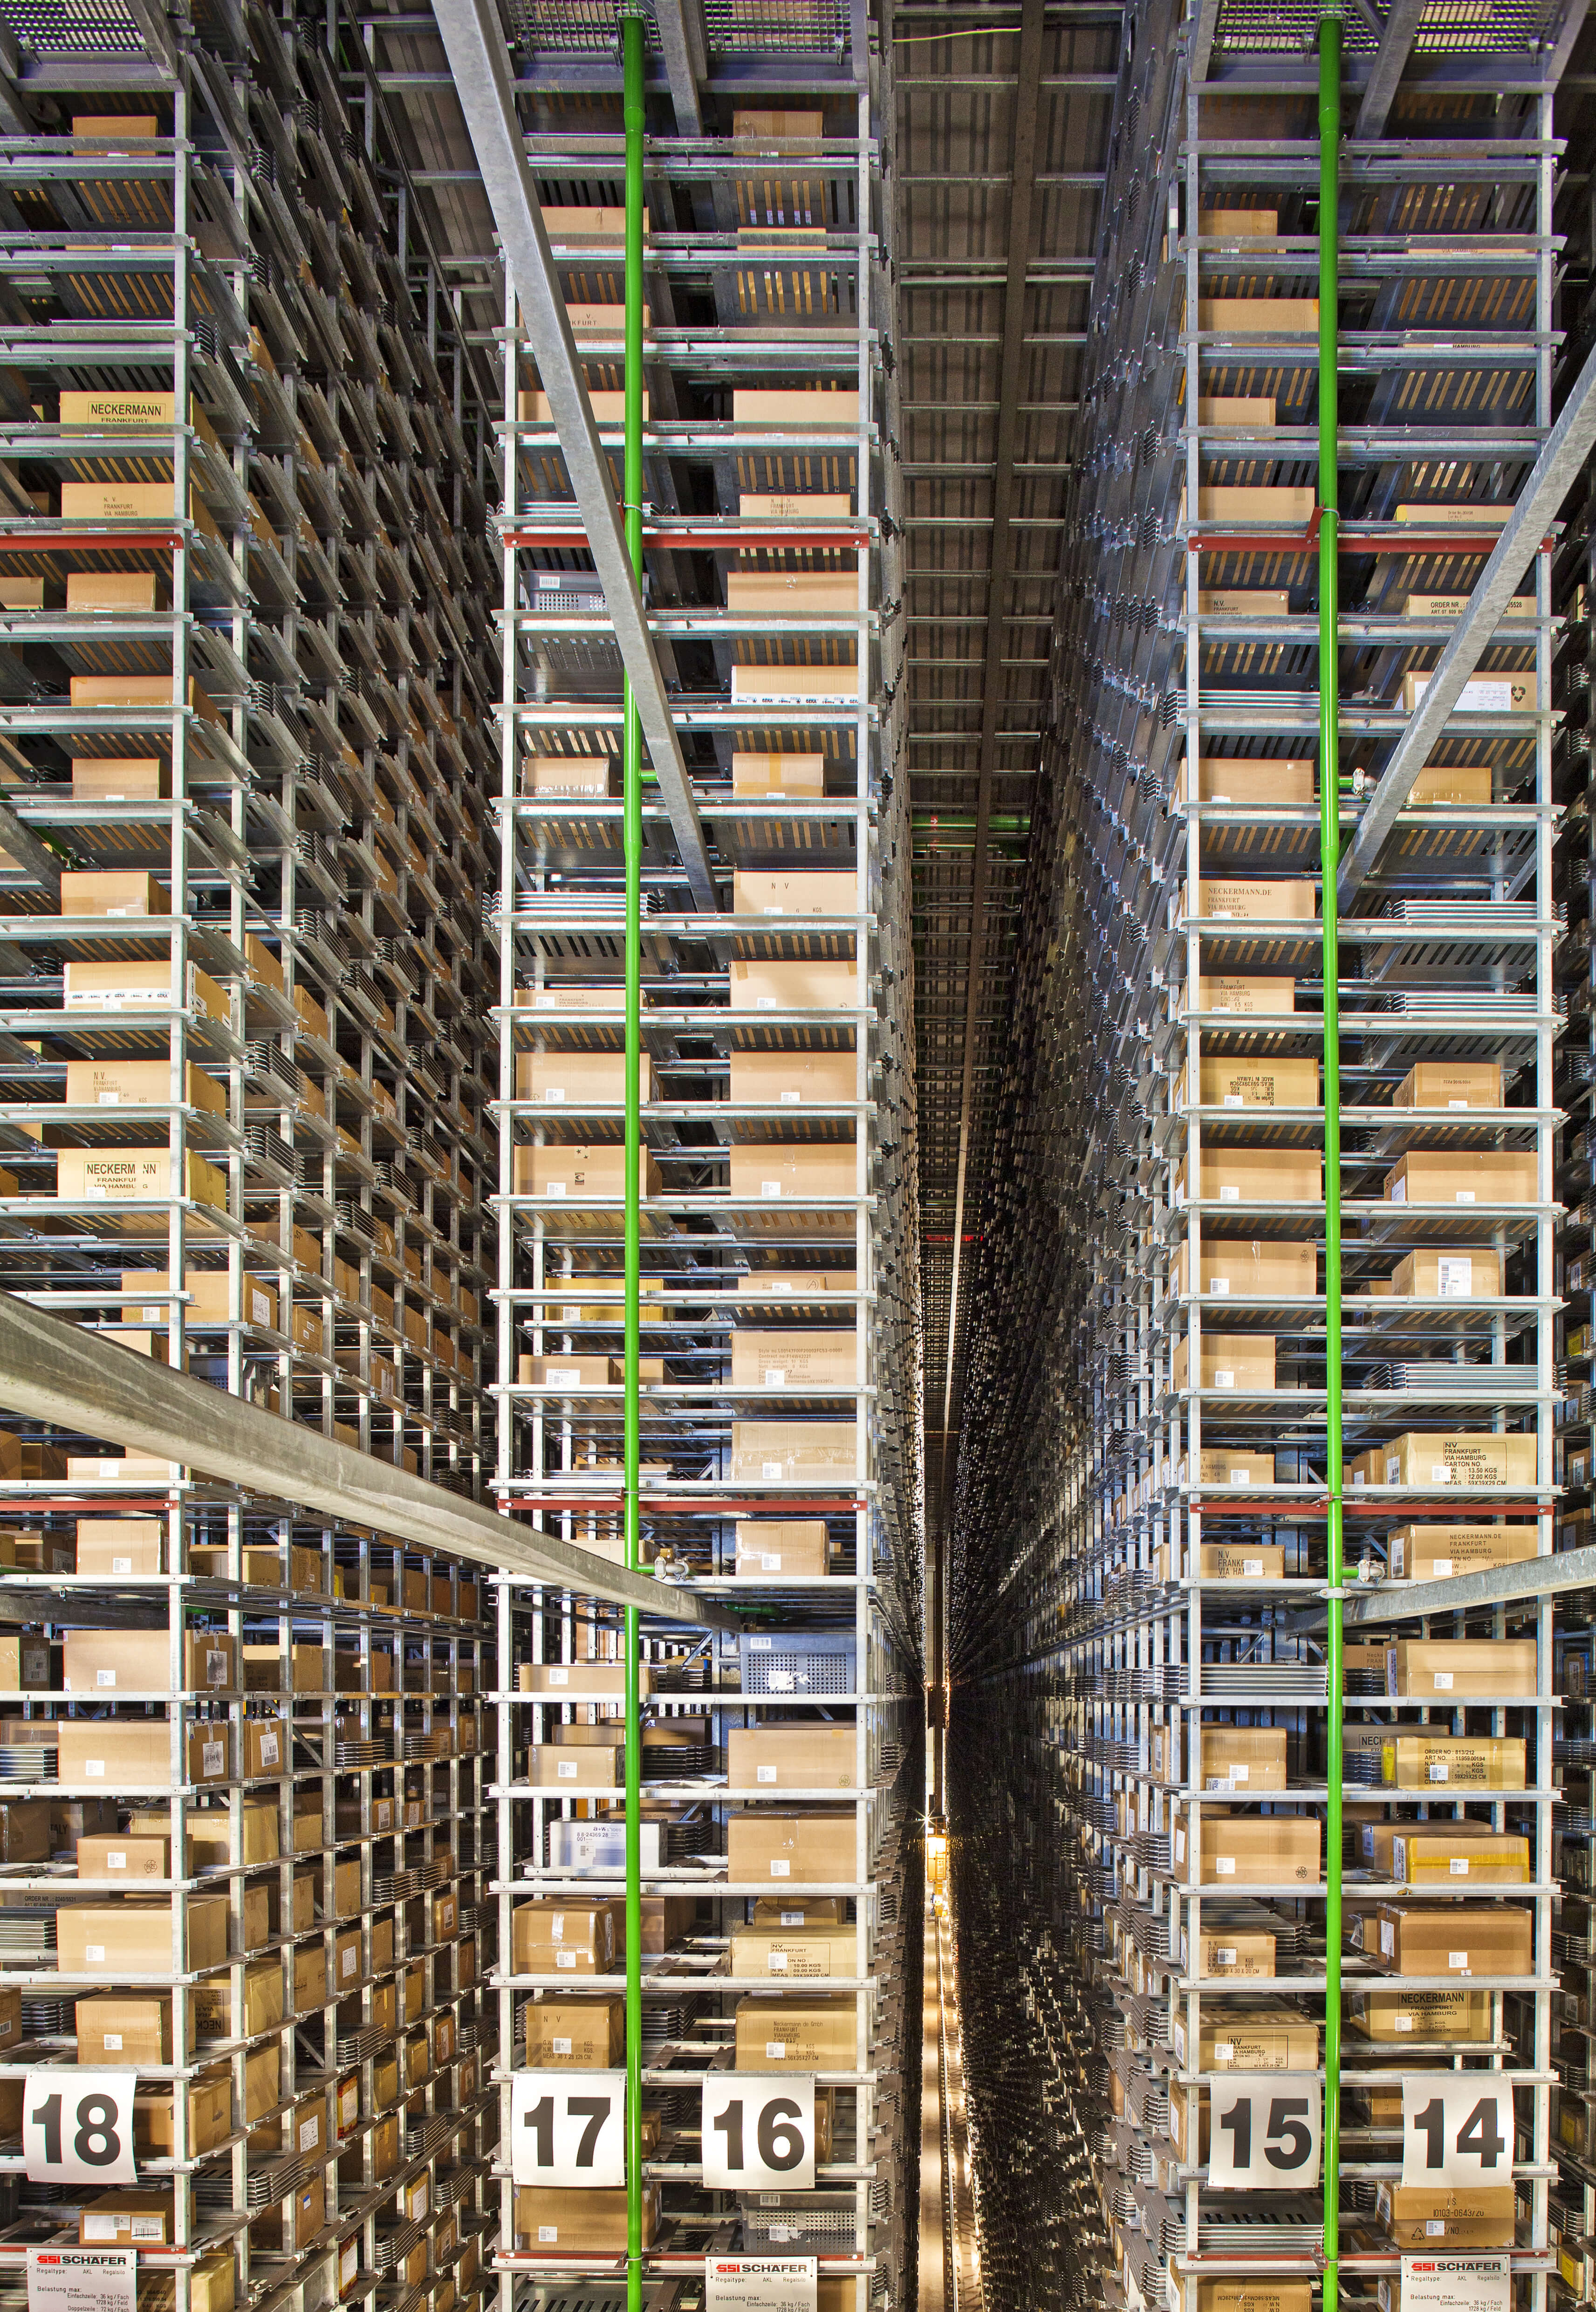 Inventory management is key in healthy growth in eCommerce